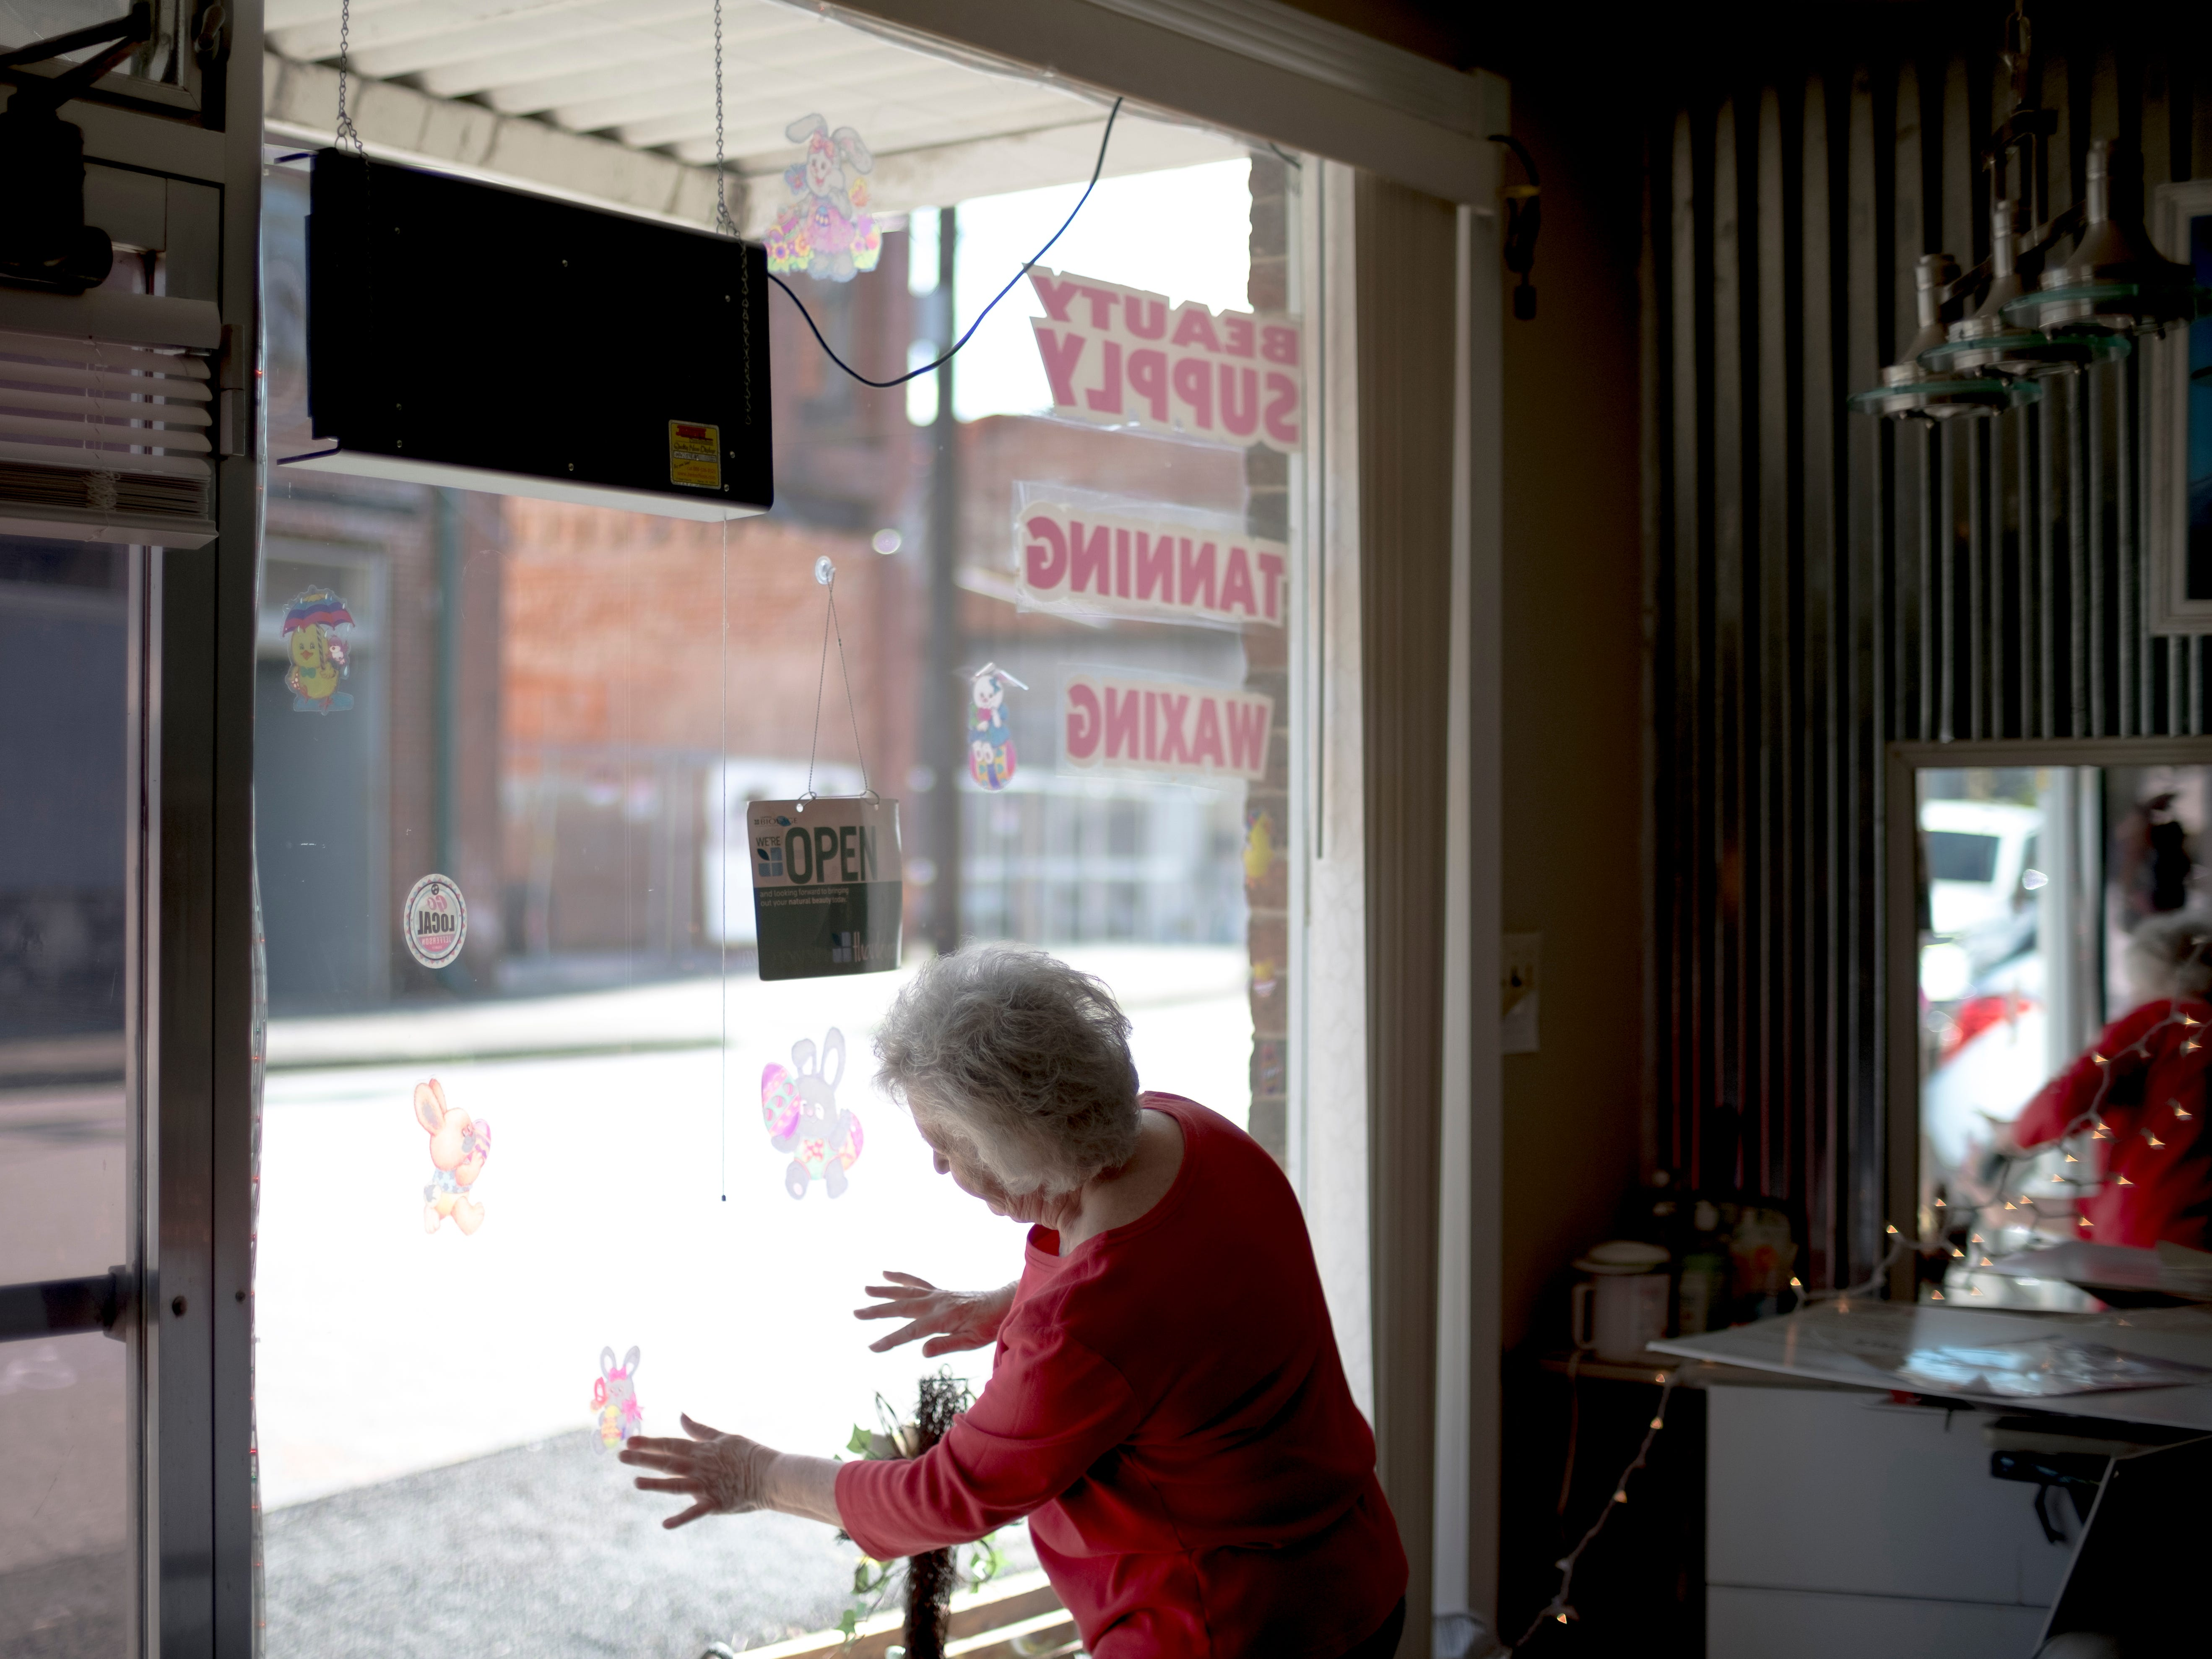 "Hairstylist Ailene Combs, owner of Cloud 9 Hair & Tanning Salon, hangs Easter decorations on the front window of her business on Main Street in Jefferson City, Tennessee on Tuesday, March 26, 2019. On a street where storefronts are boarded up and abandoned, the salon is one of the only businesses remaining. A member of the zoning committee since 2010, Combs has been working to receive funding for the revitalization of downtown. ""It will never be the same it once was,"" Combs says, ""It didn't get into this shape overnight, and it's going to take a lot of people working together."""